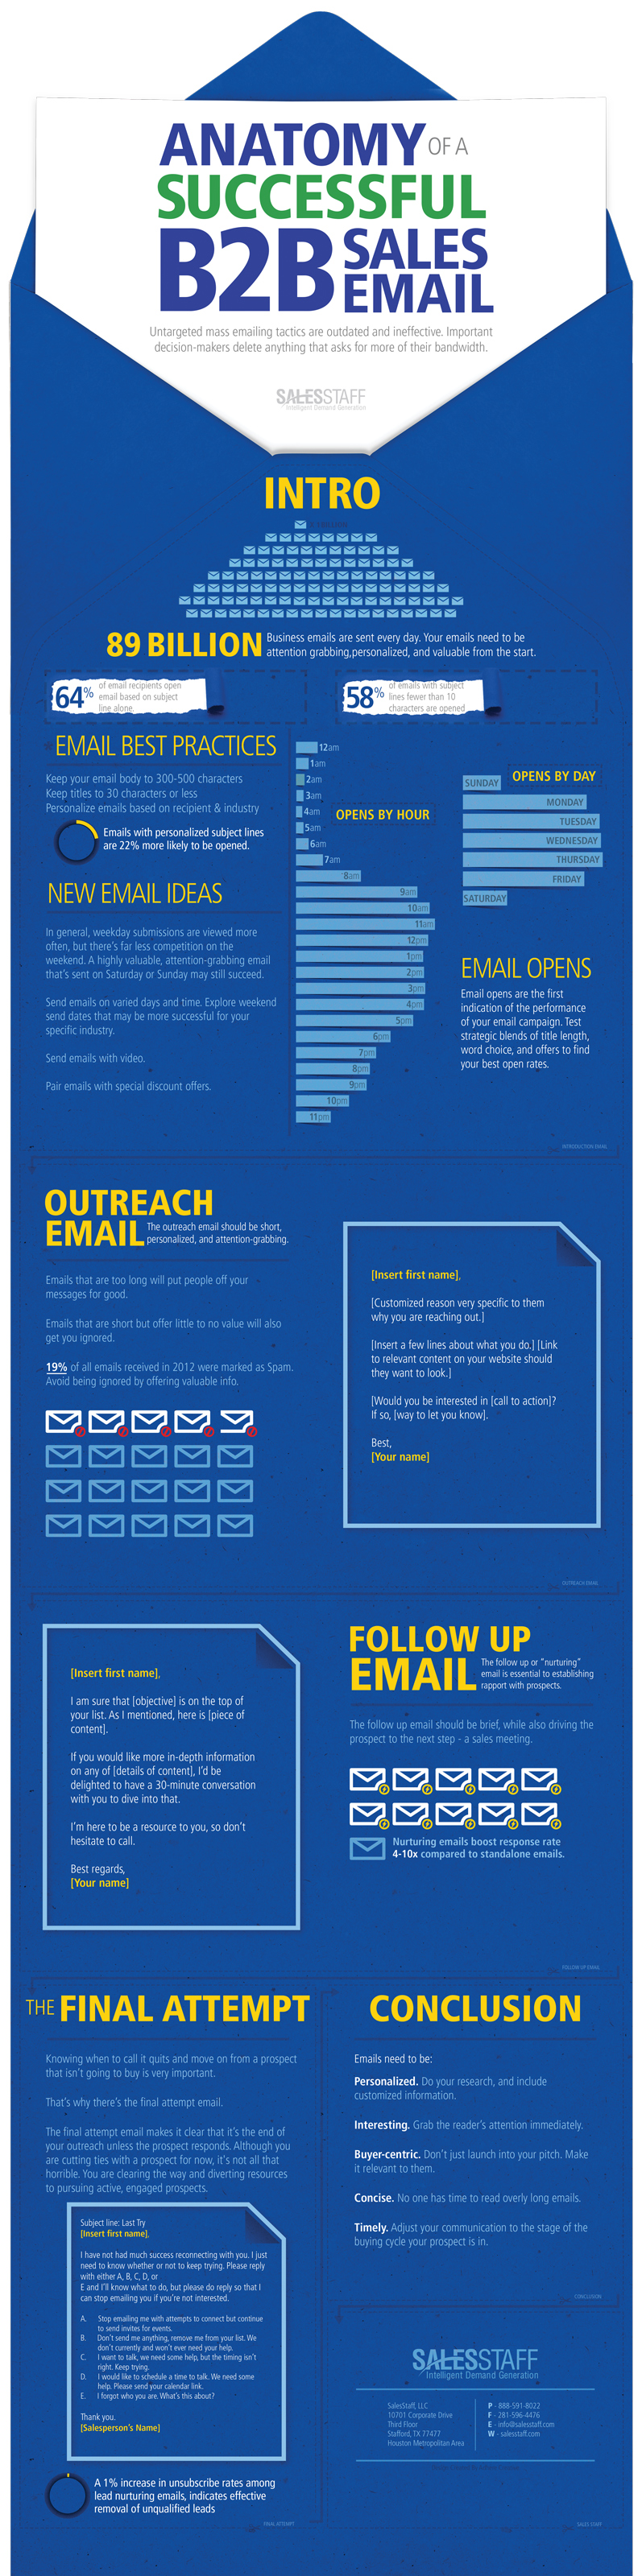 The-Anatomy-of-a-Successful-B2B-Sales-Email-infographic-2_jpg